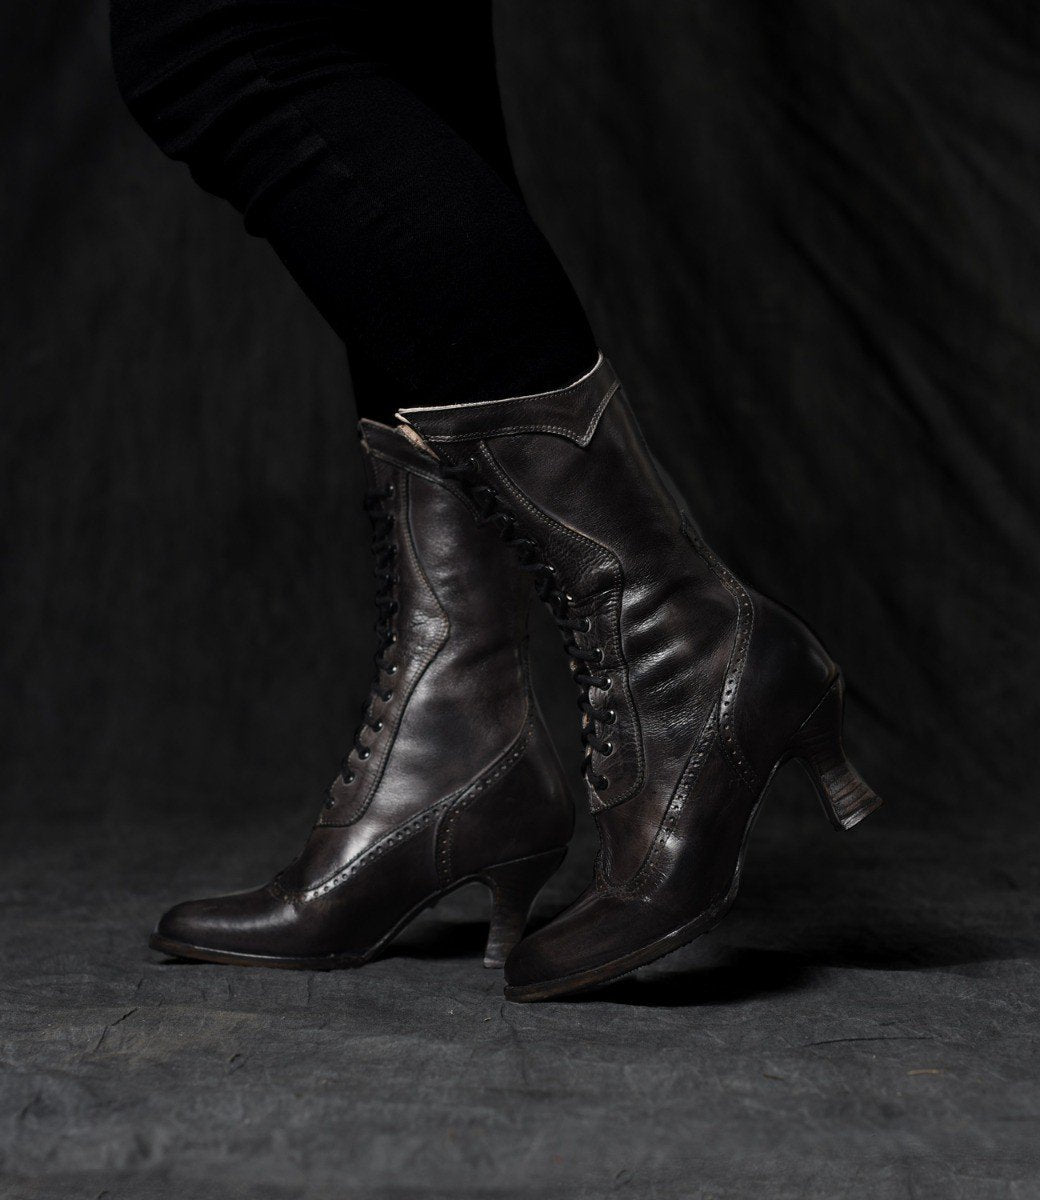 Edwardian Shoes & Boots | Titanic Shoes Modern Victorian Lace Up Leather Boots in Black $255.00 AT vintagedancer.com